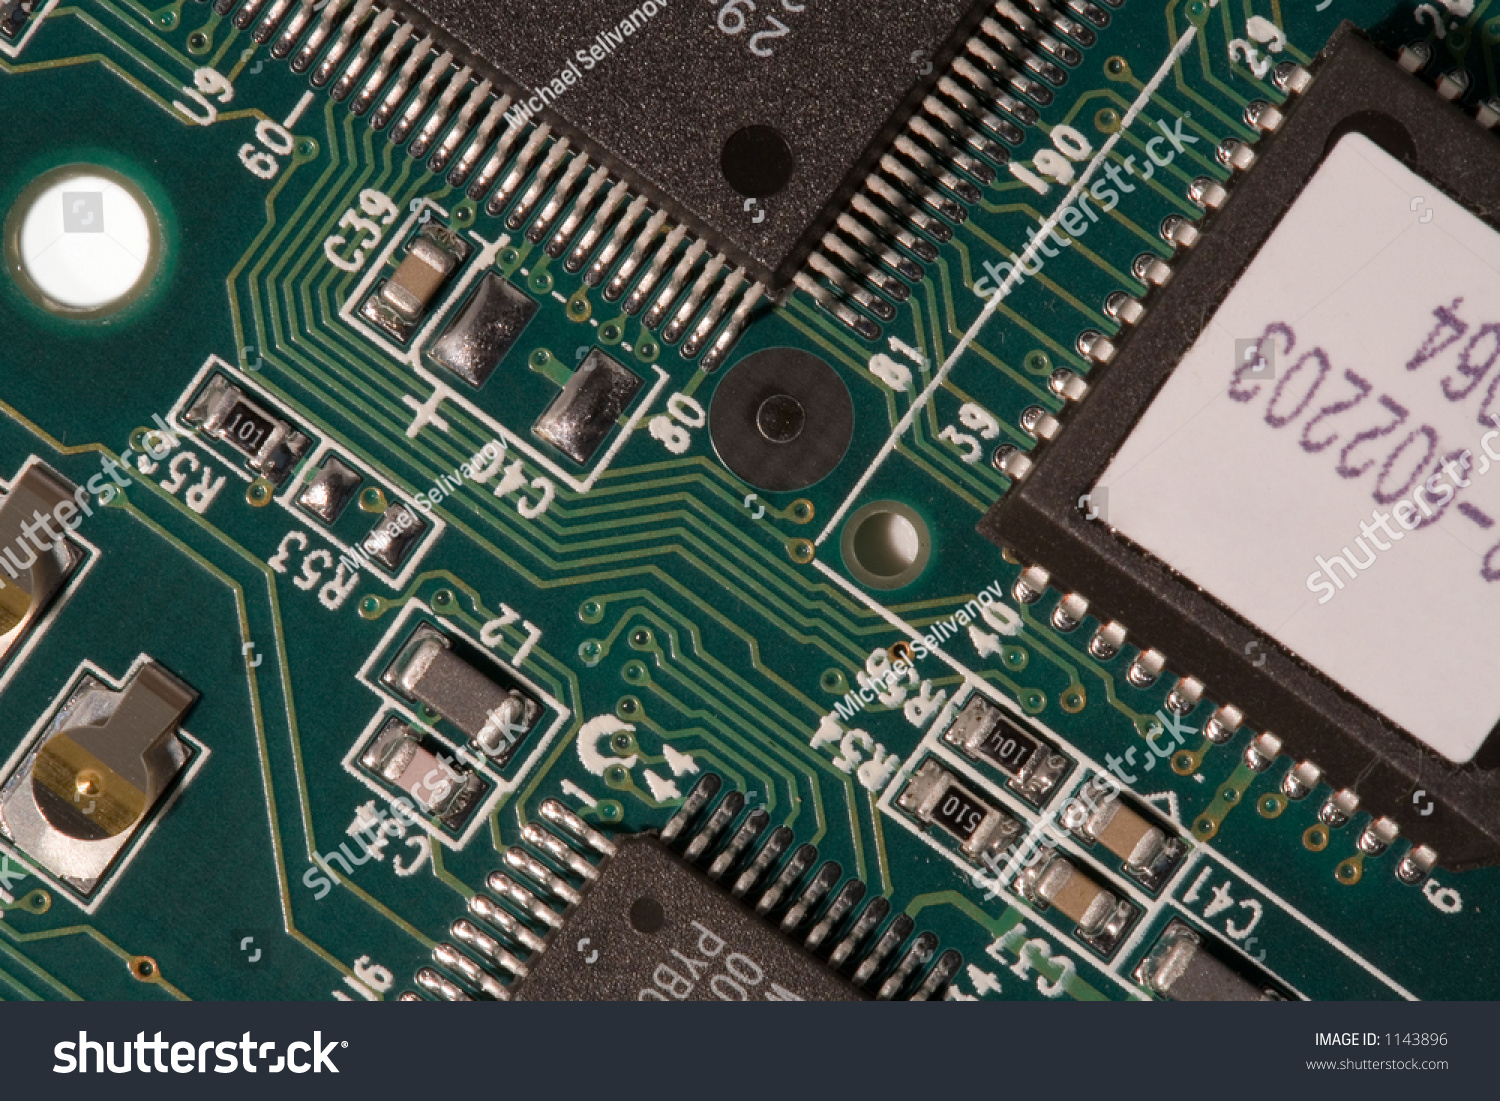 Printed Circuit Board Macro Stock Photo Edit Now 1143896 Photos Images Pictures Shutterstock